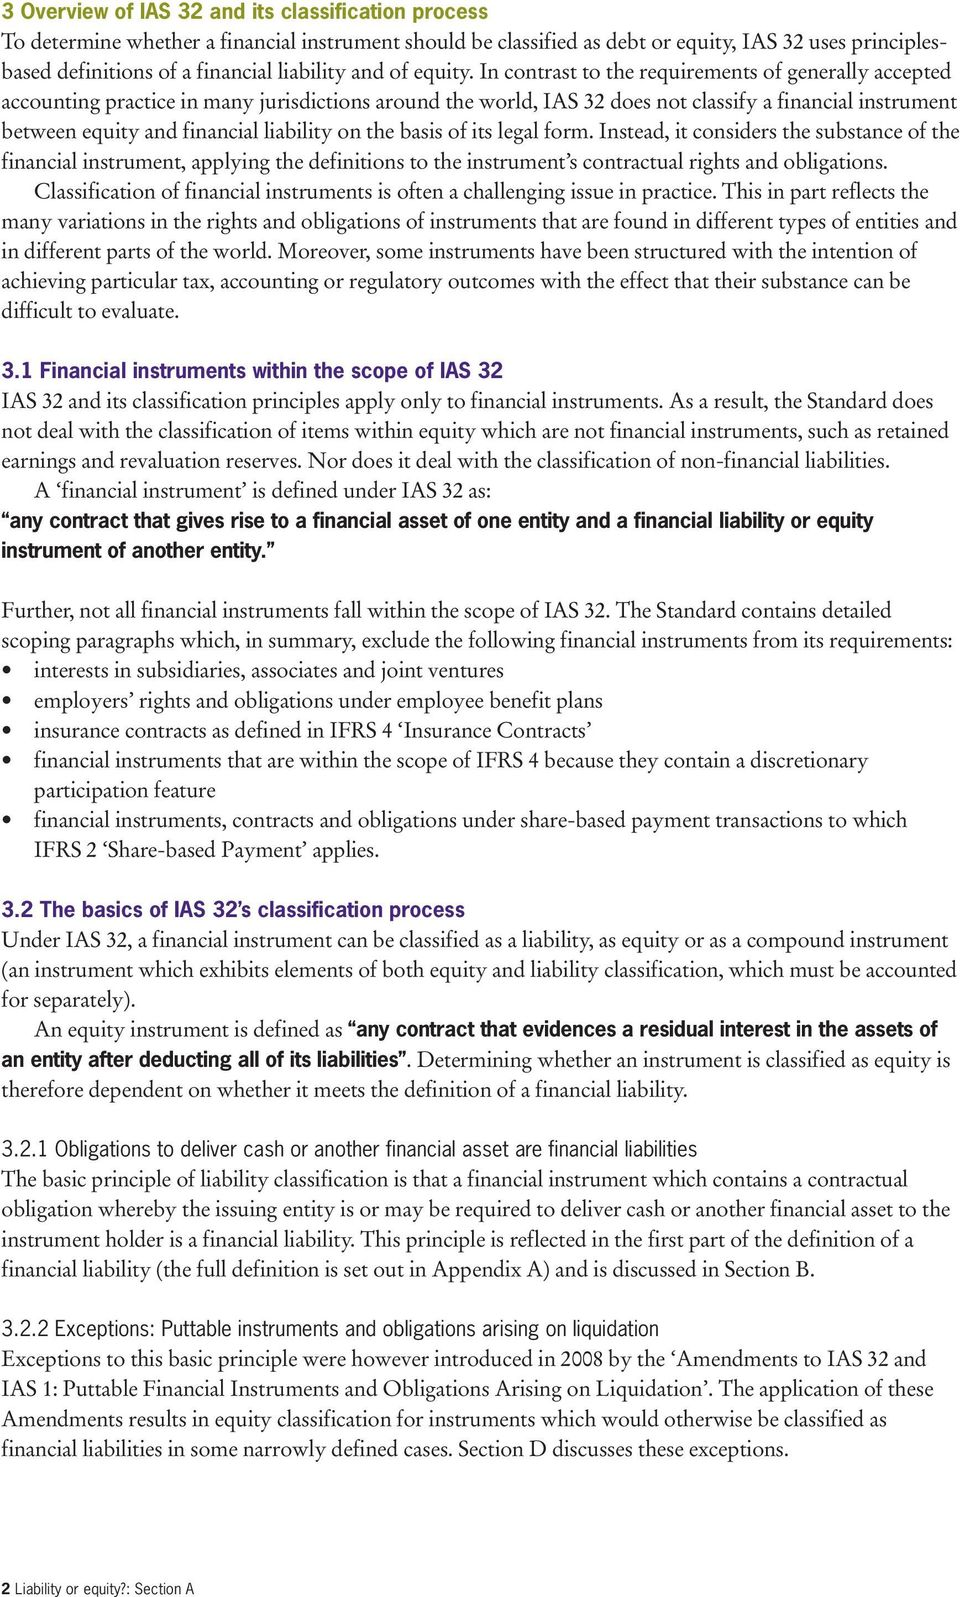 In contrast to the requirements of generally accepted accounting practice in many jurisdictions around the world, IAS 32 does not classify a financial instrument between equity and financial